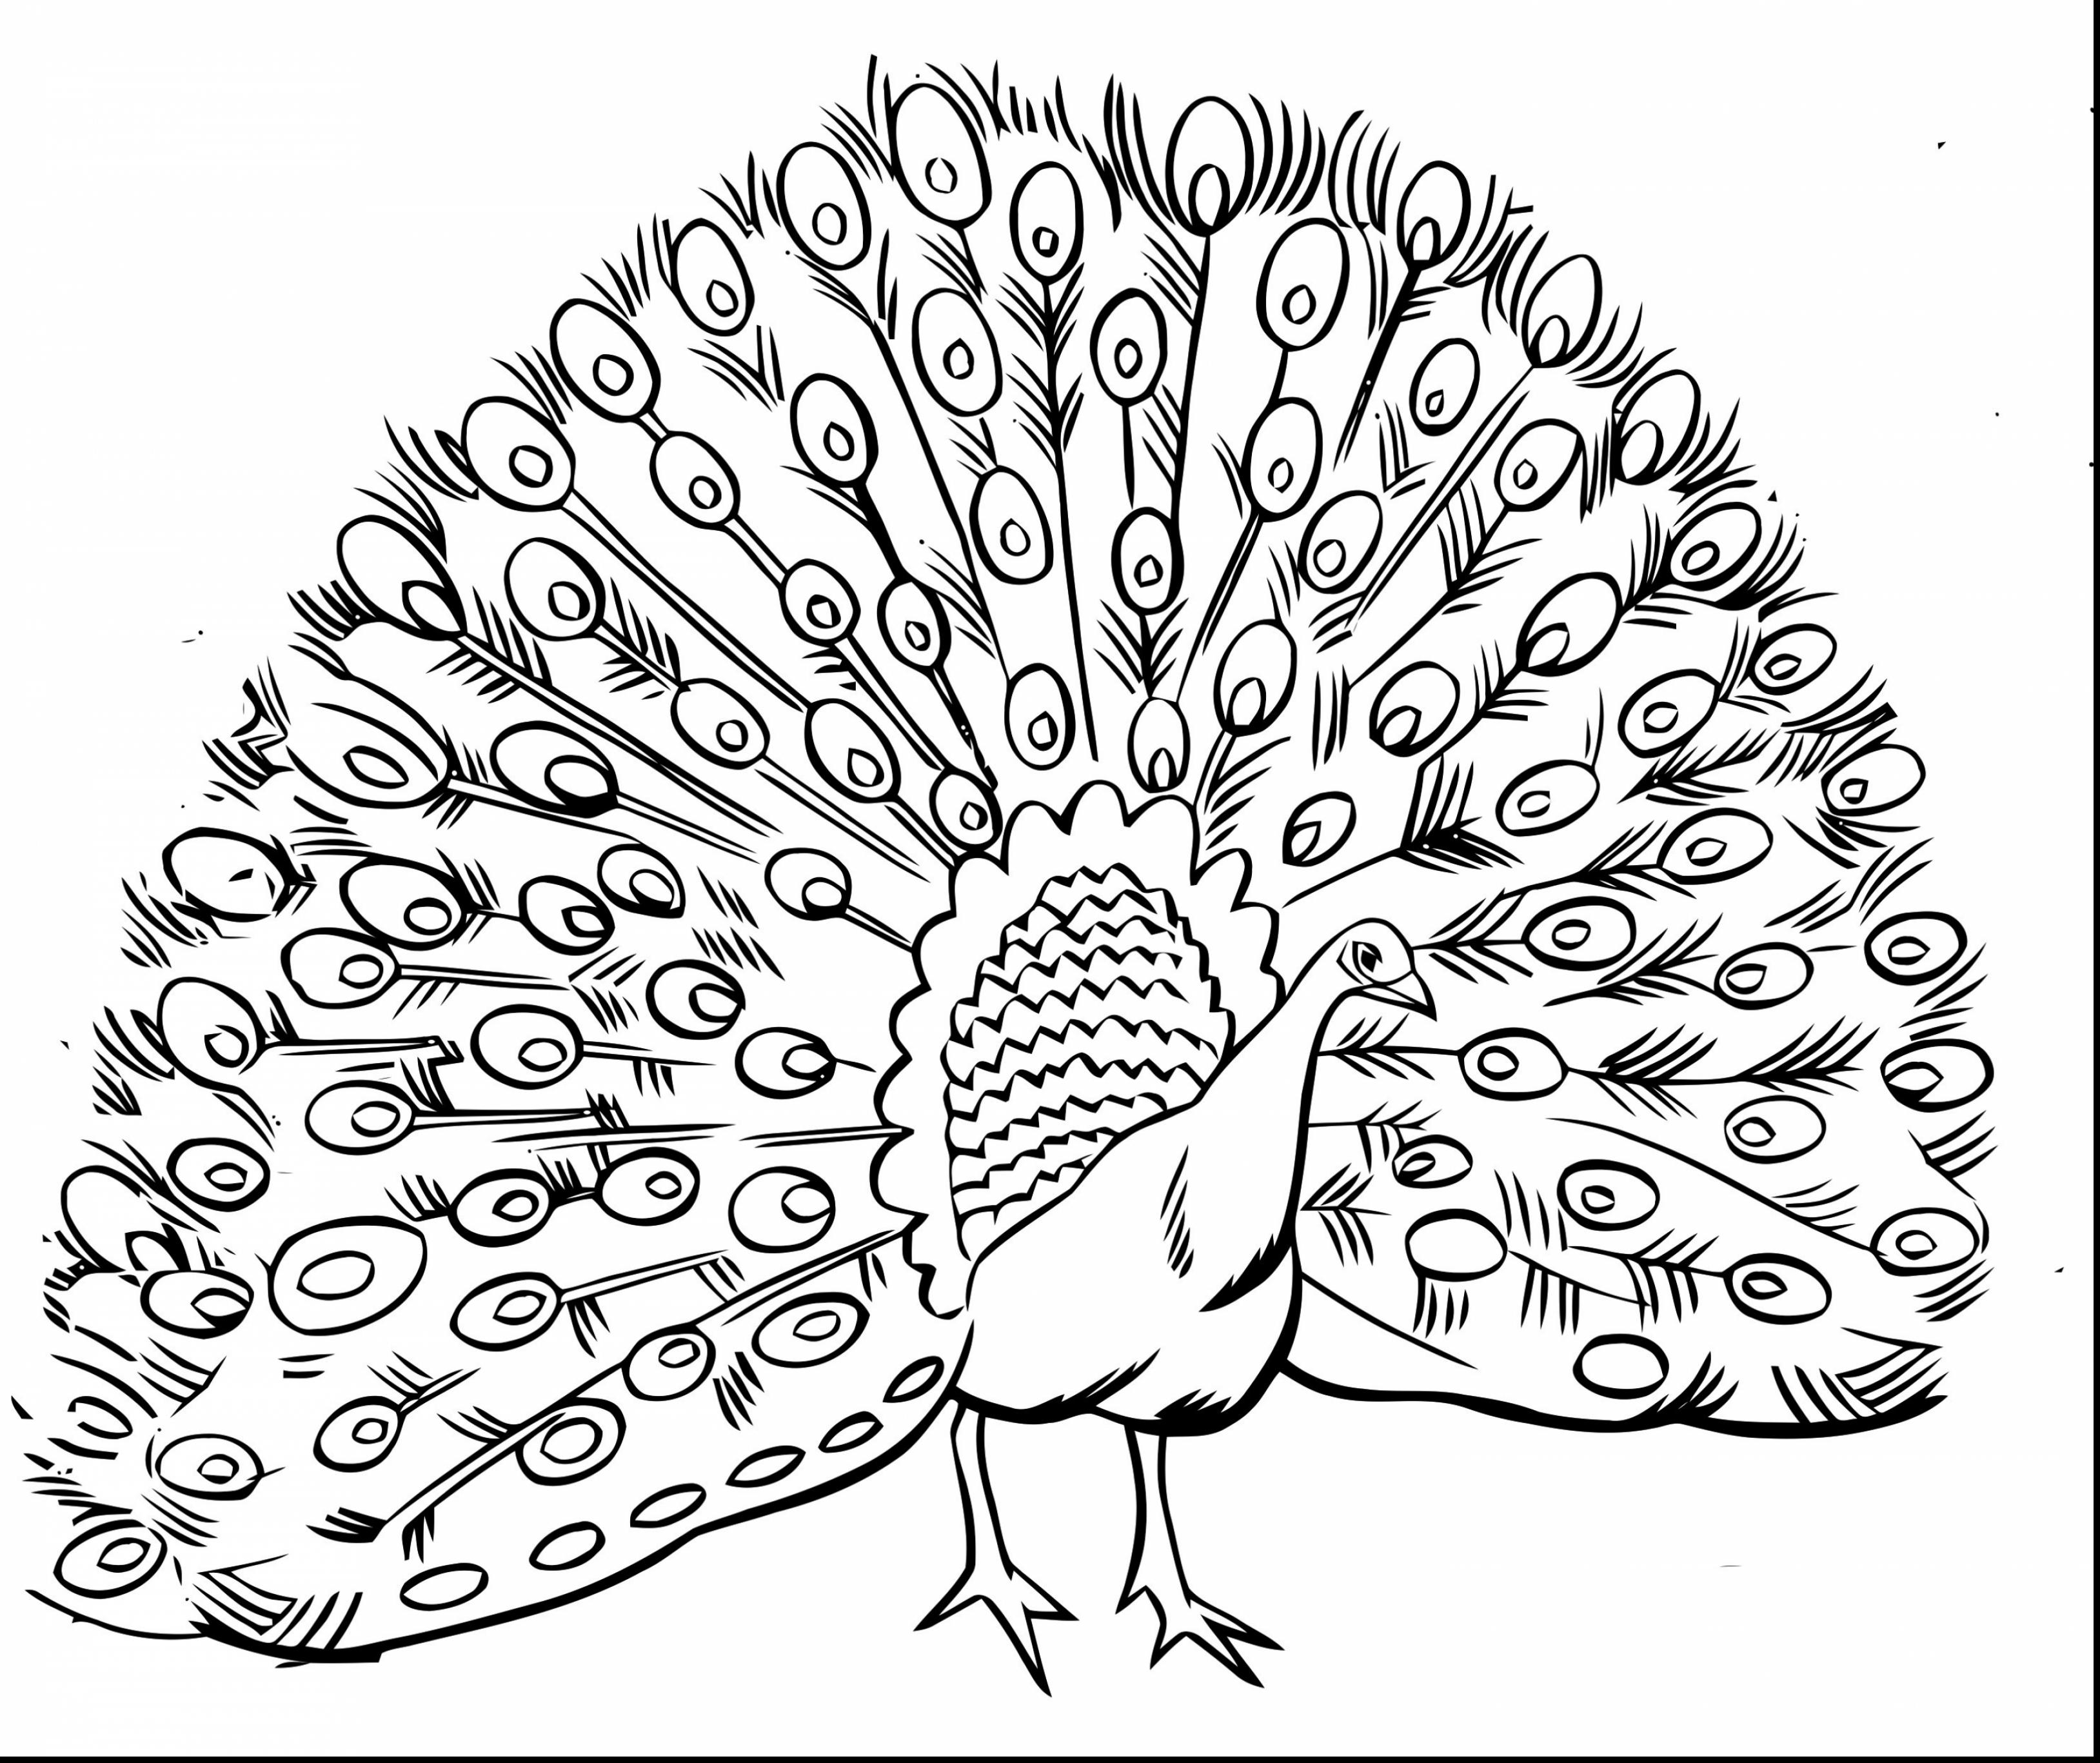 3256x2733 Astounding Printable Intricate Adult Coloring Pages With Amazing